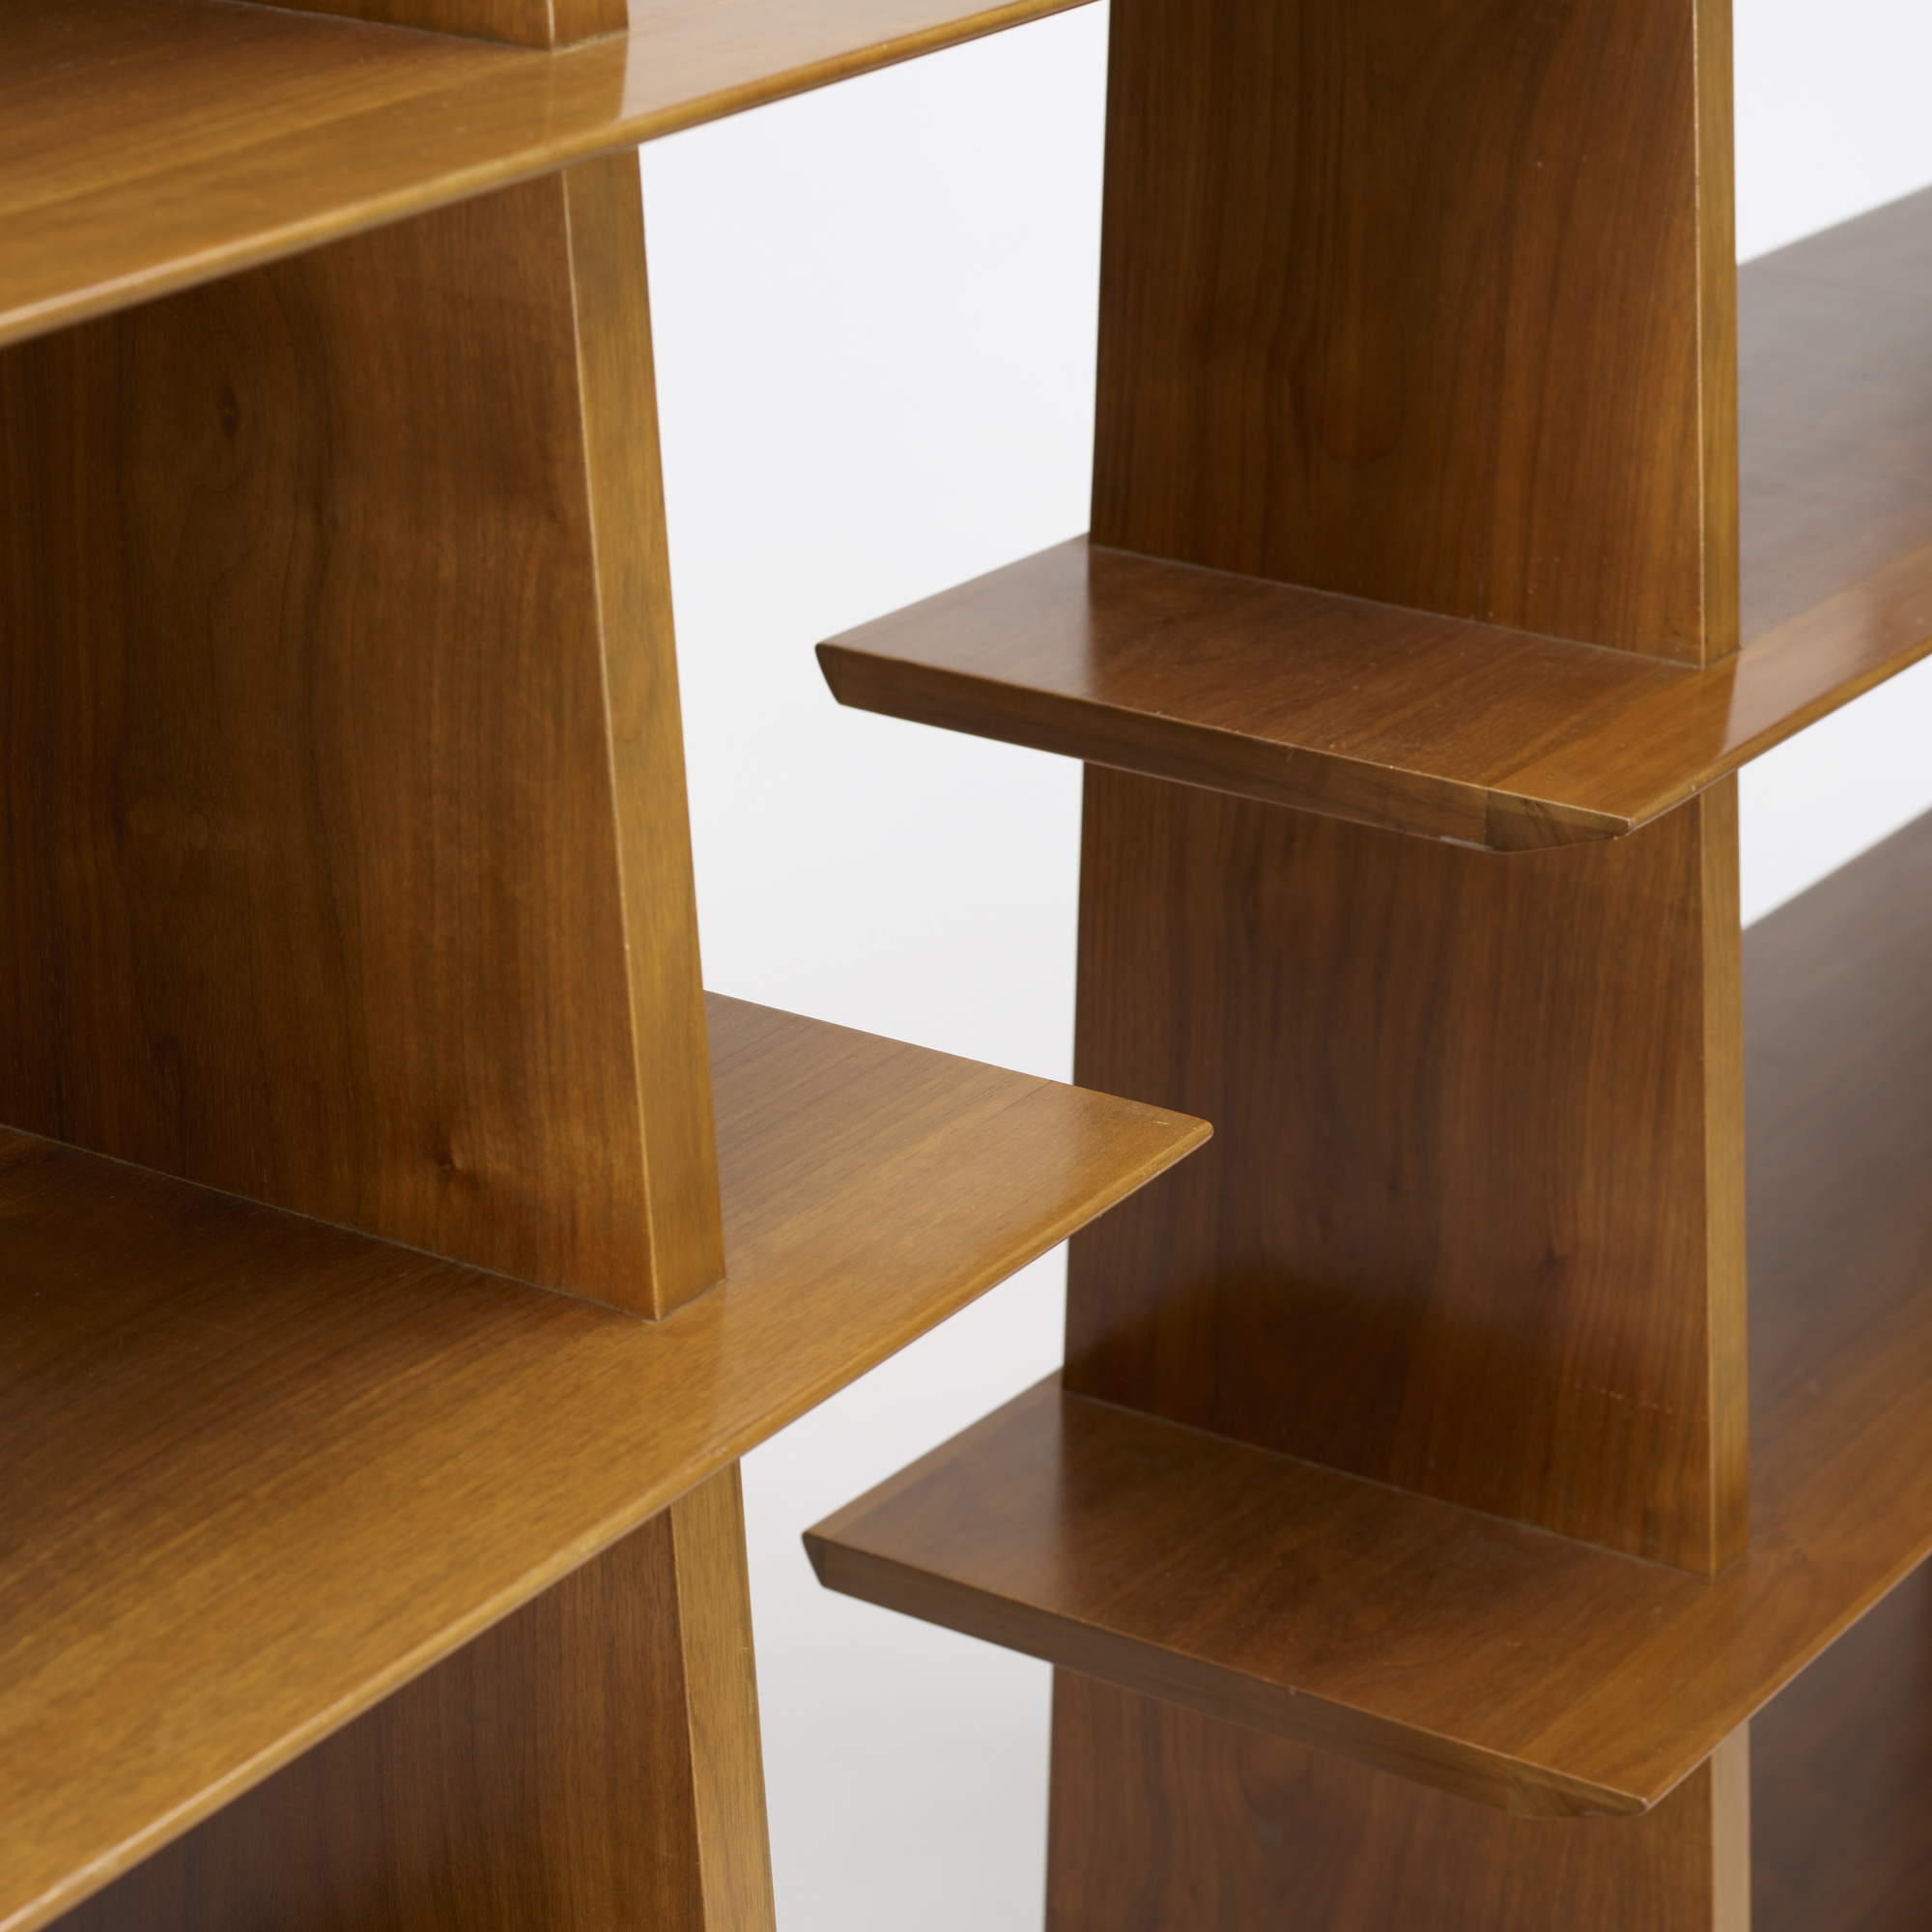 359: Edward Wormley / bookcases model 5264, pair (3 of 3)